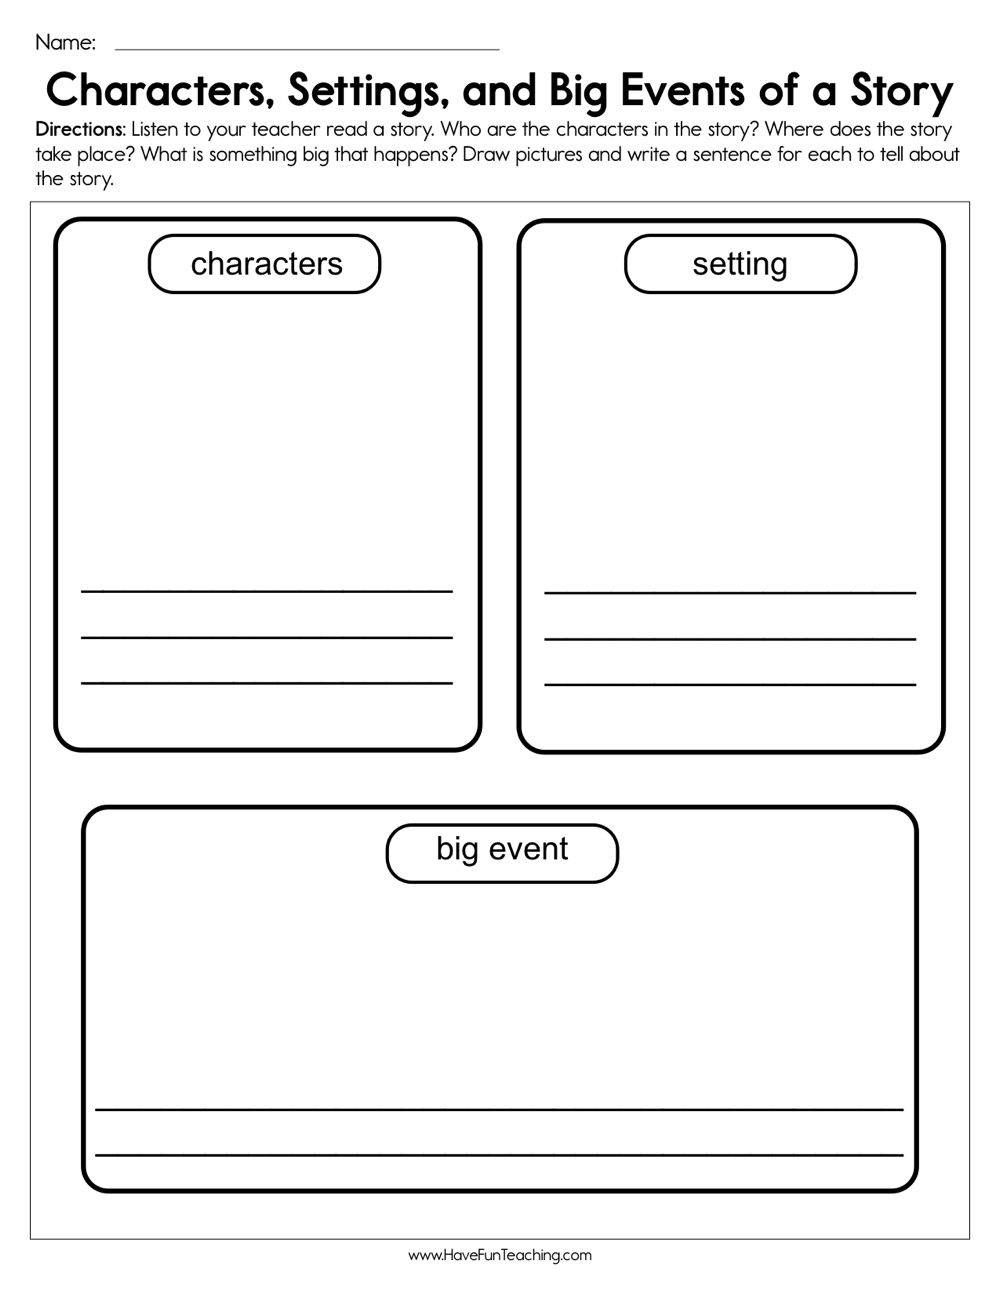 Characters Settings And Big Events Worksheet Character Worksheets Kindergarten Worksheets Story Elements Worksheet